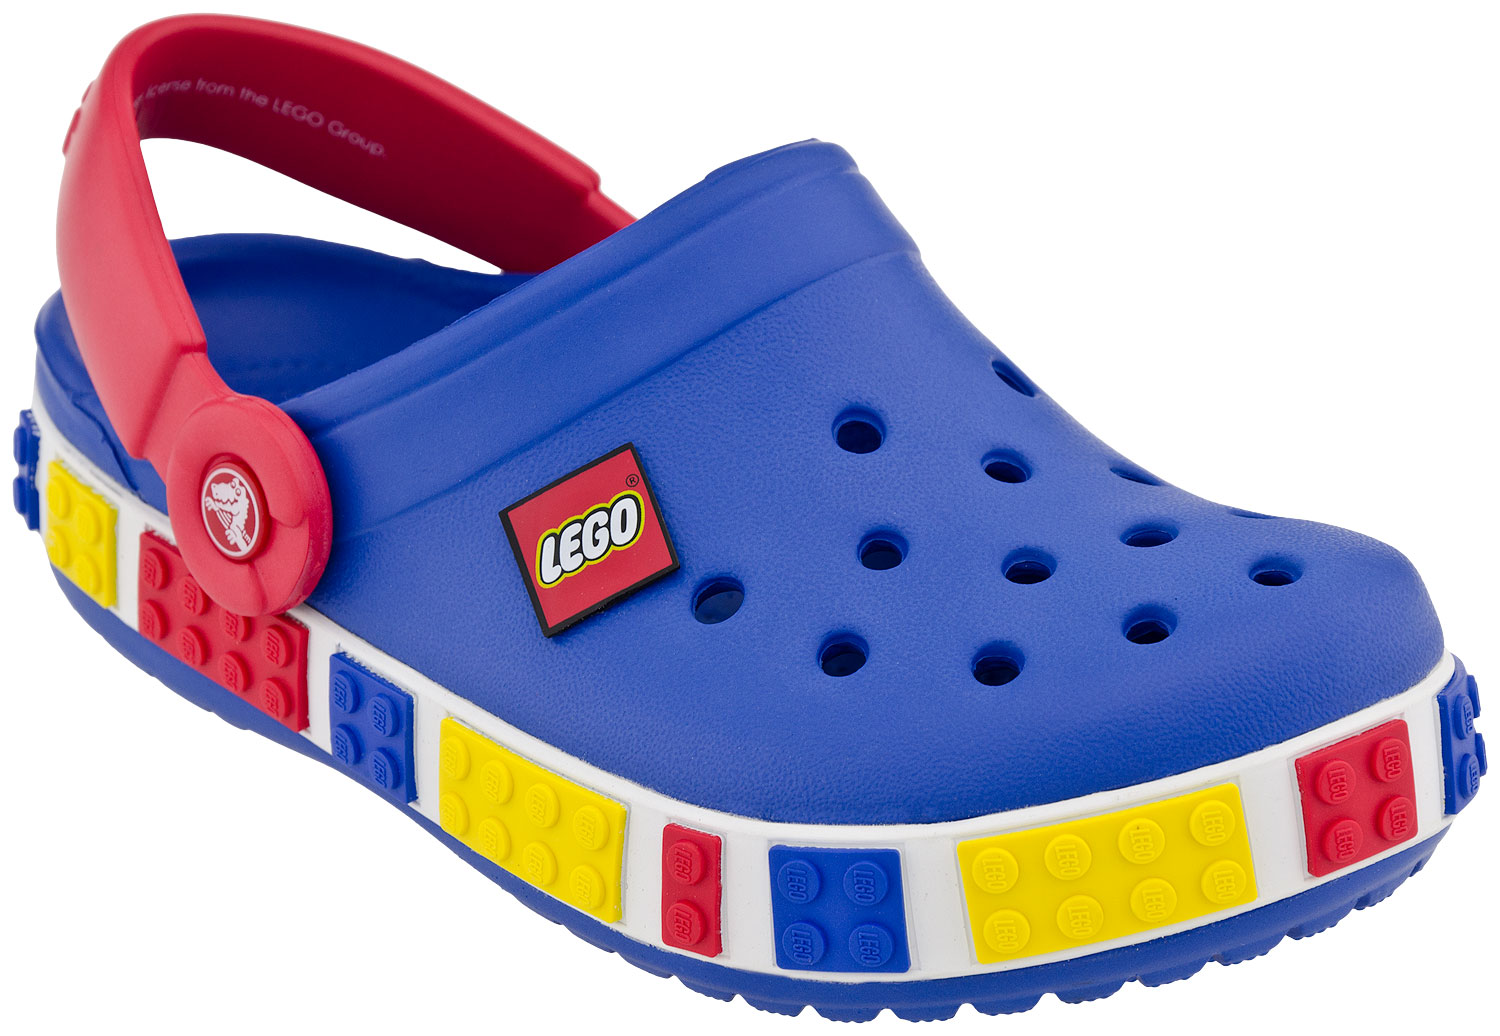 552af8531f98 Those LEGO Slippers Are Real